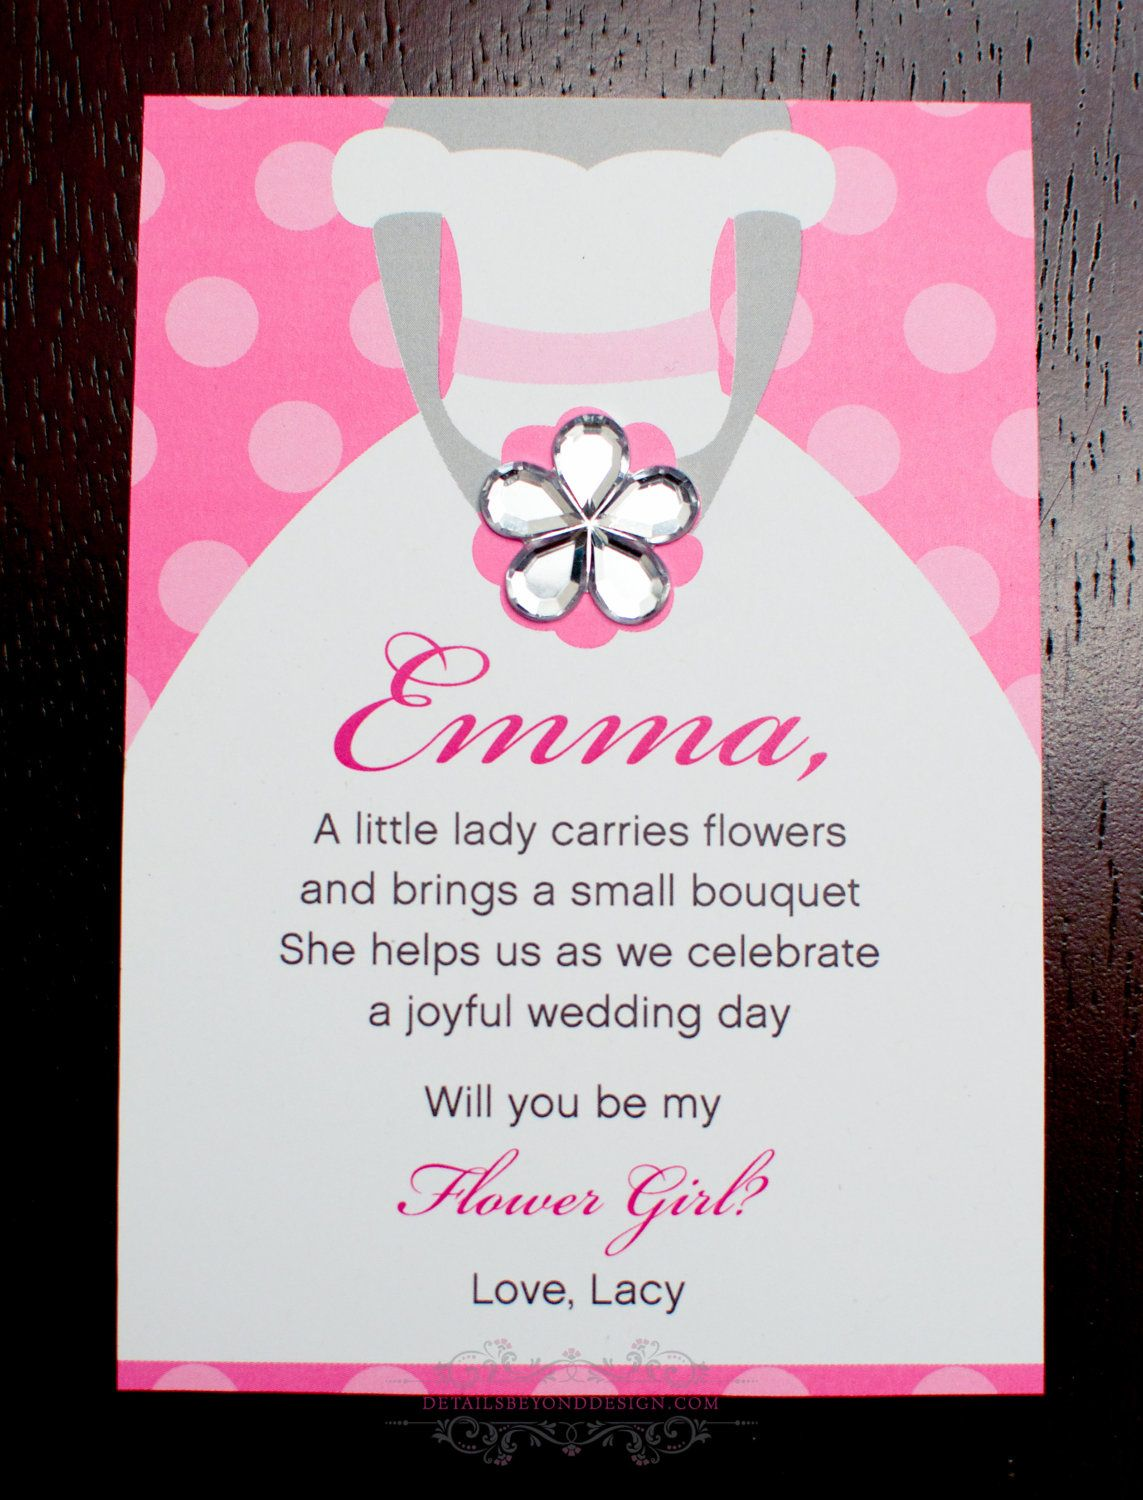 wedding party invitation message%0A Wedding stuff